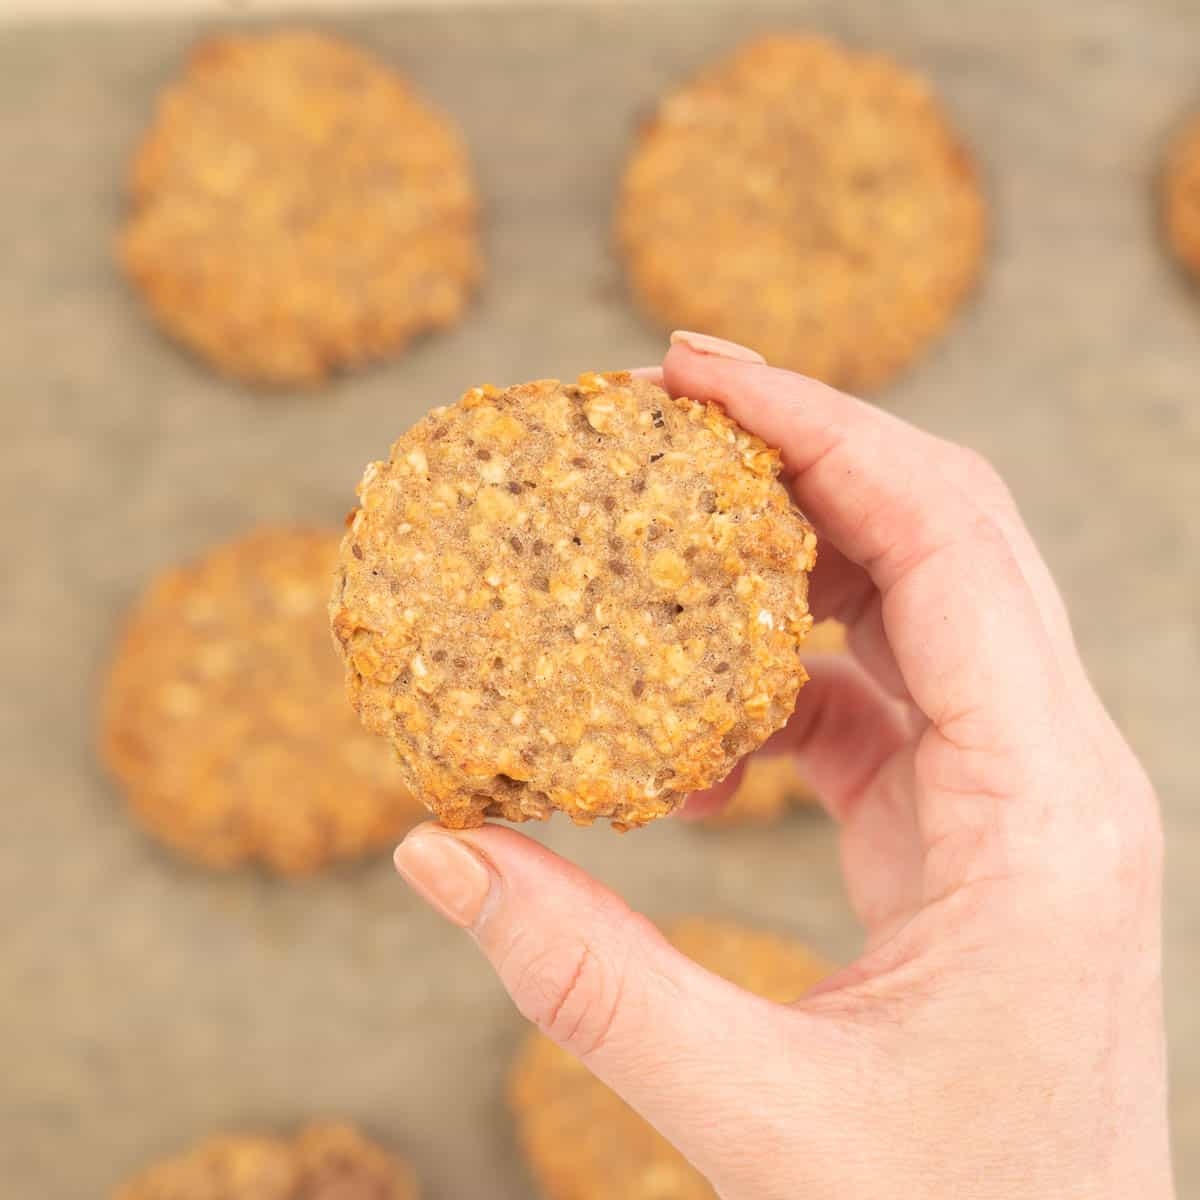 A hand holding an oatmeal toddler cookie above a tray of baked cookies.